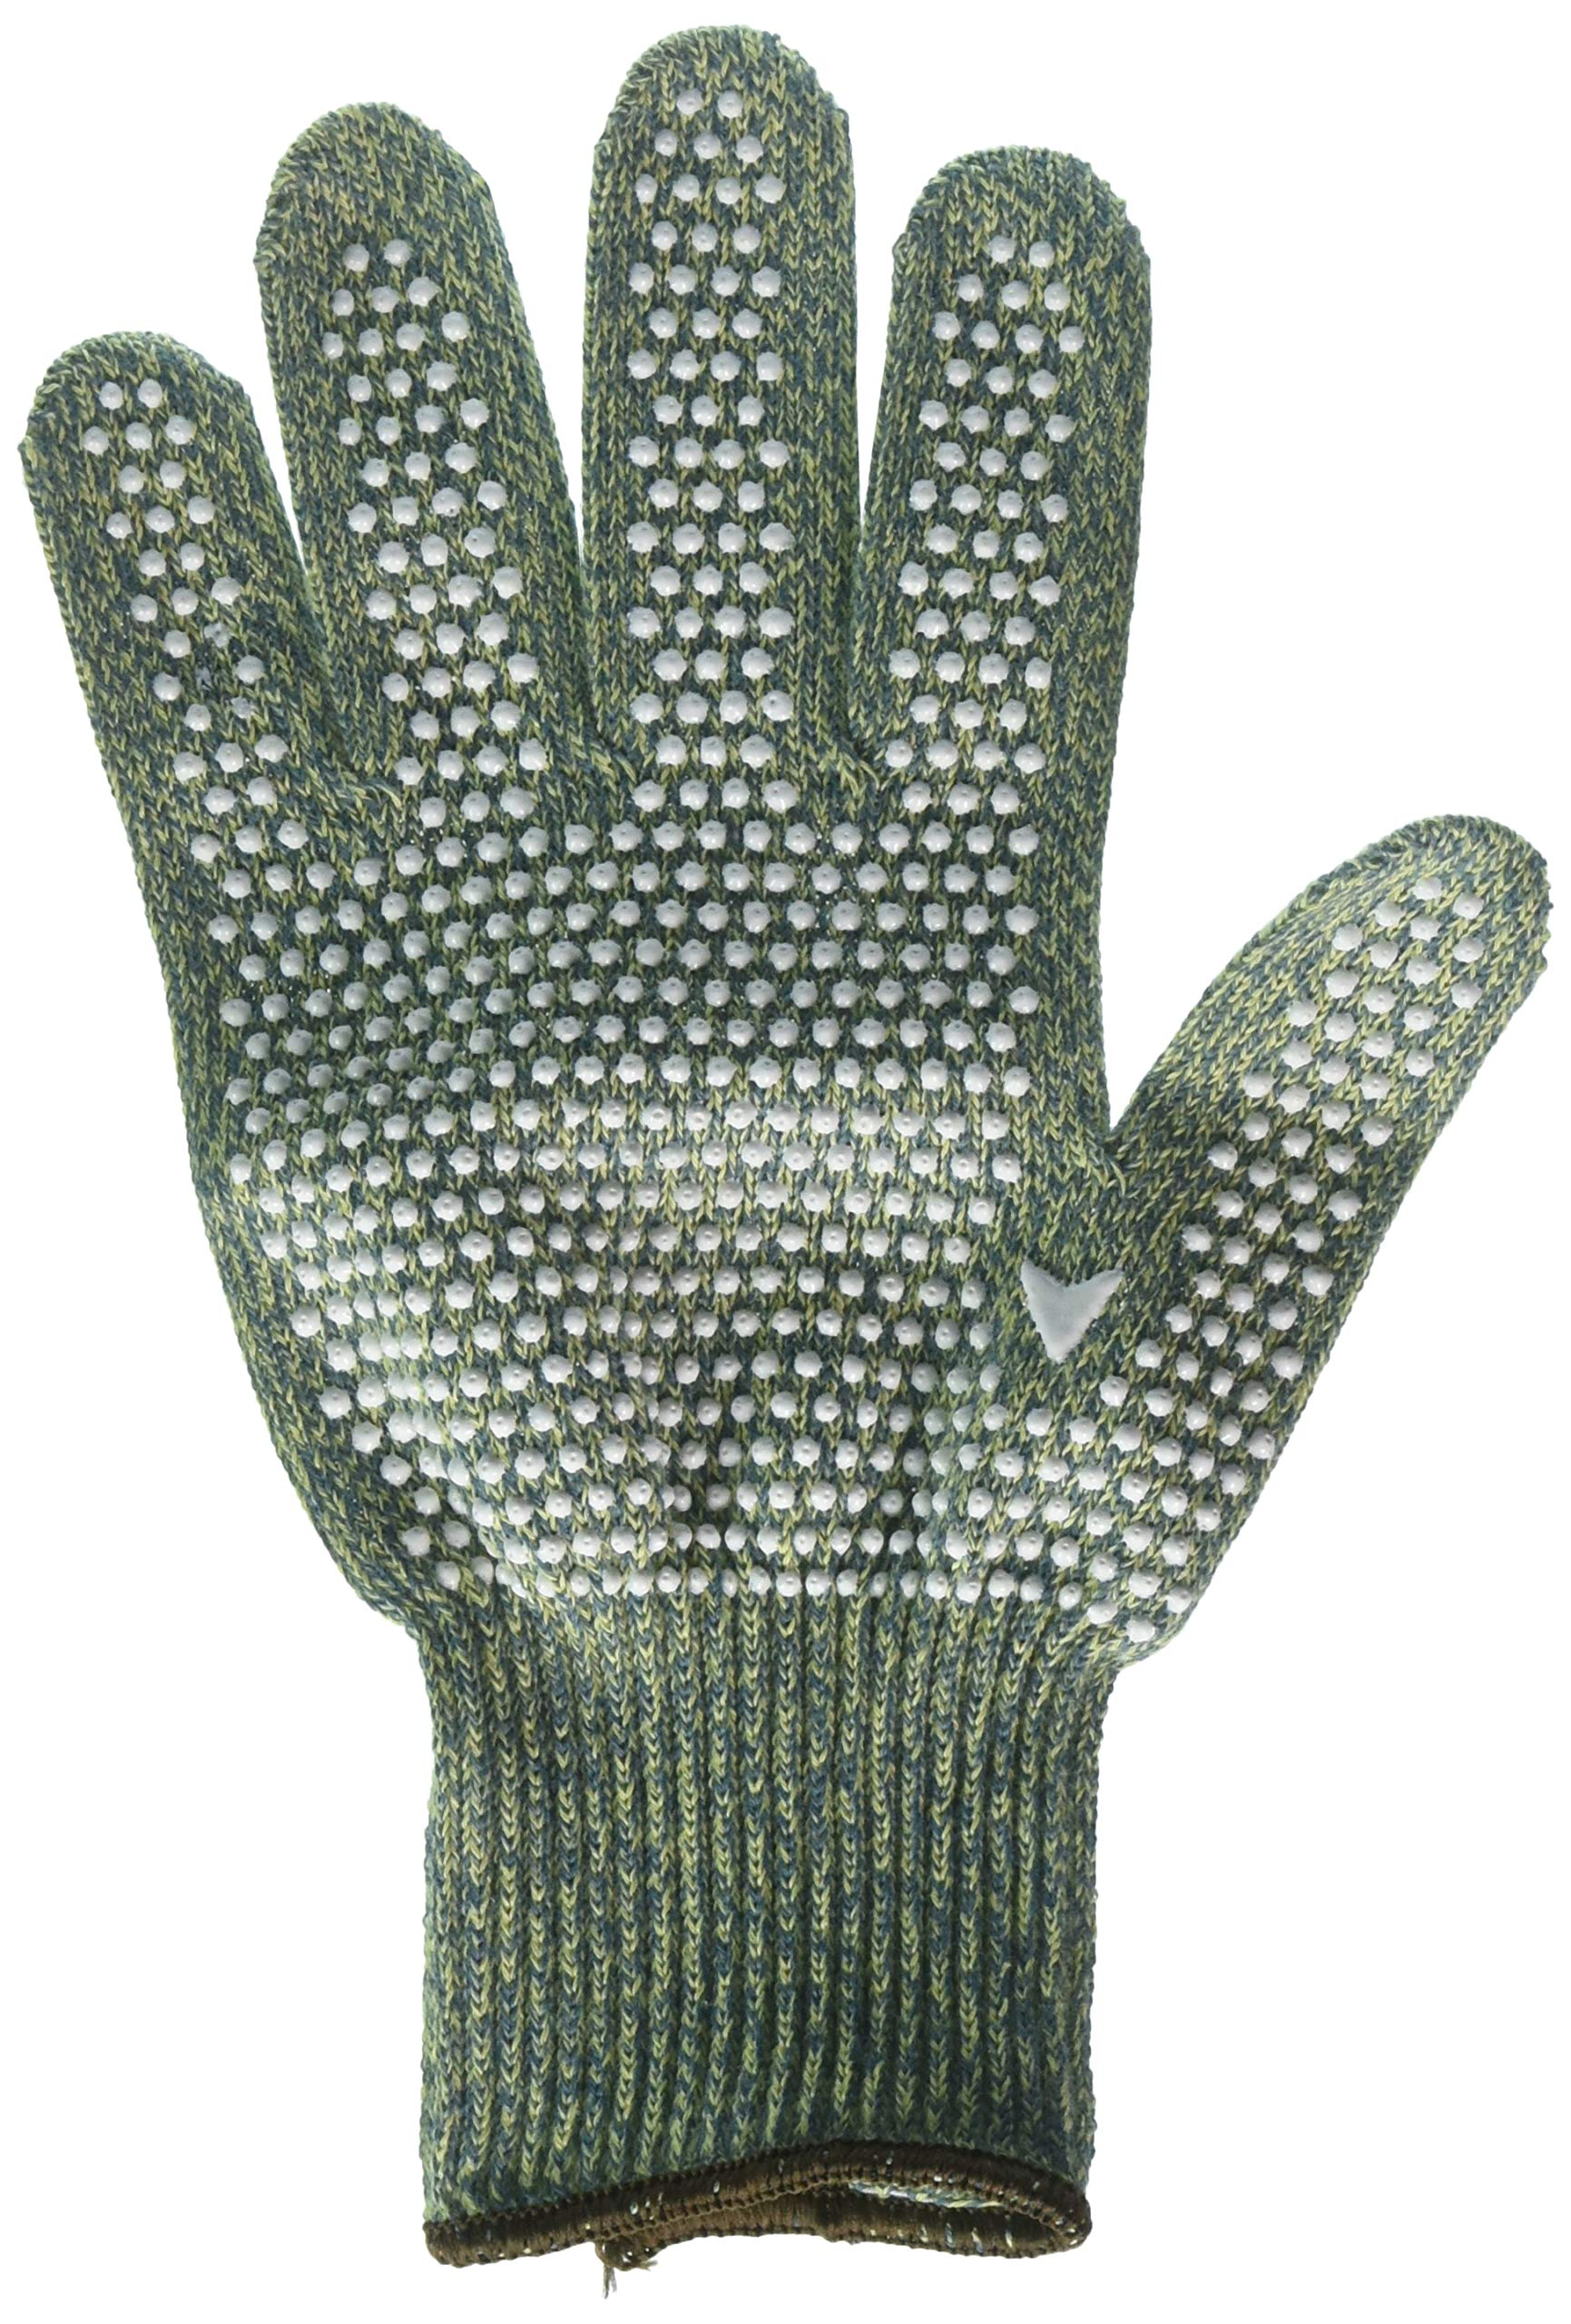 Fons and Porter Klutz Glove, Large